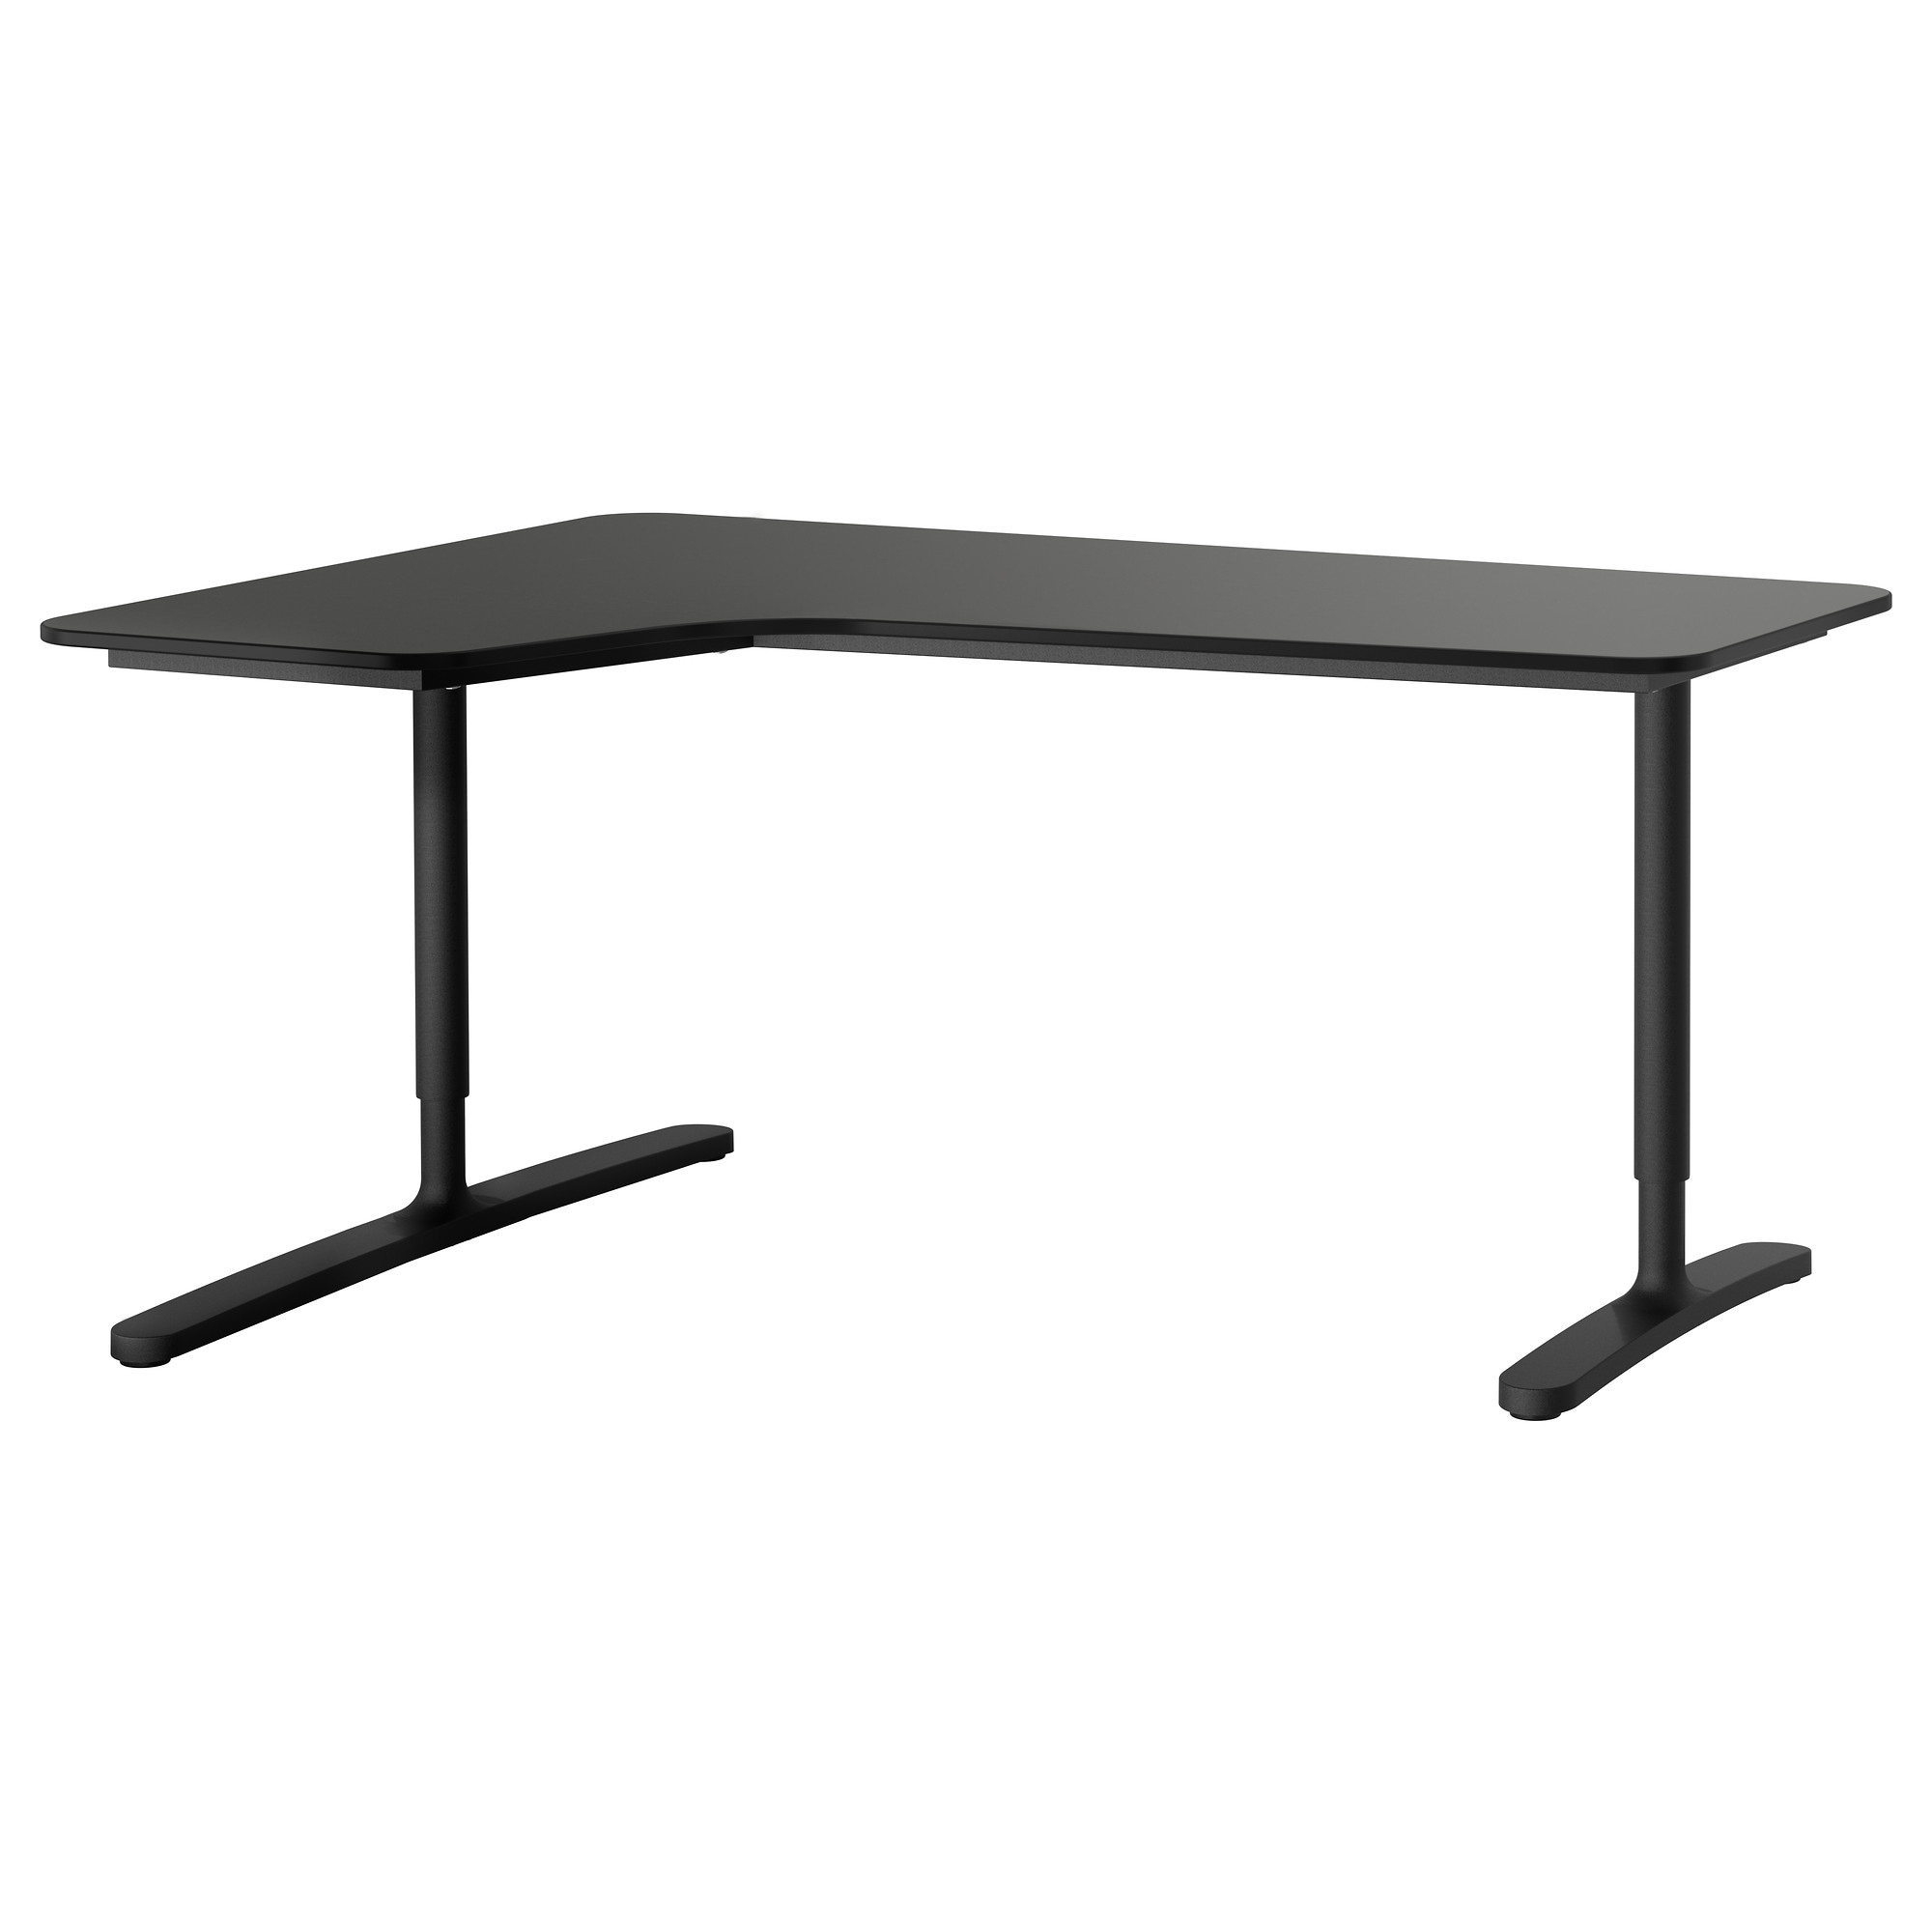 BEKANT Corner Desk Left   Gray/black   IKEA